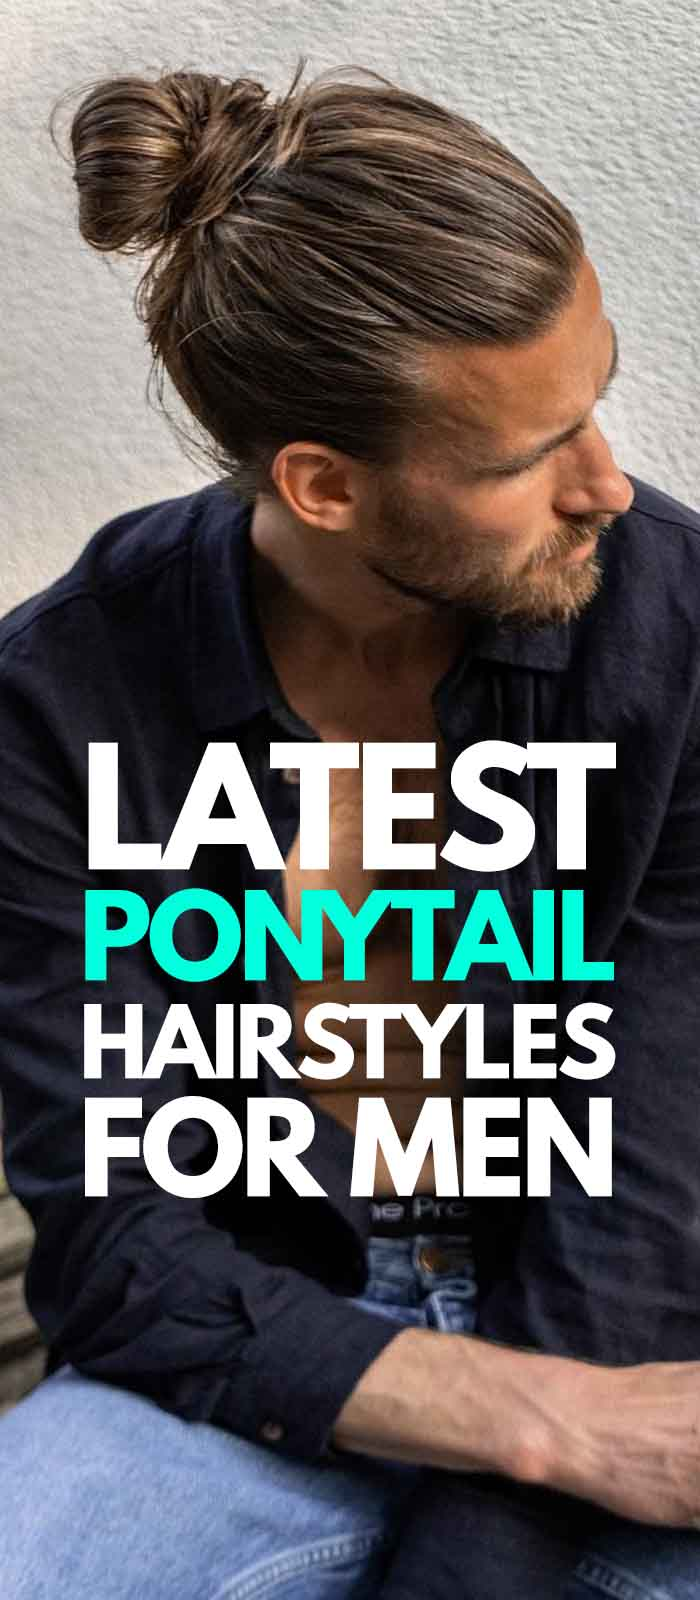 Ponytail Haircurt For Men 2019